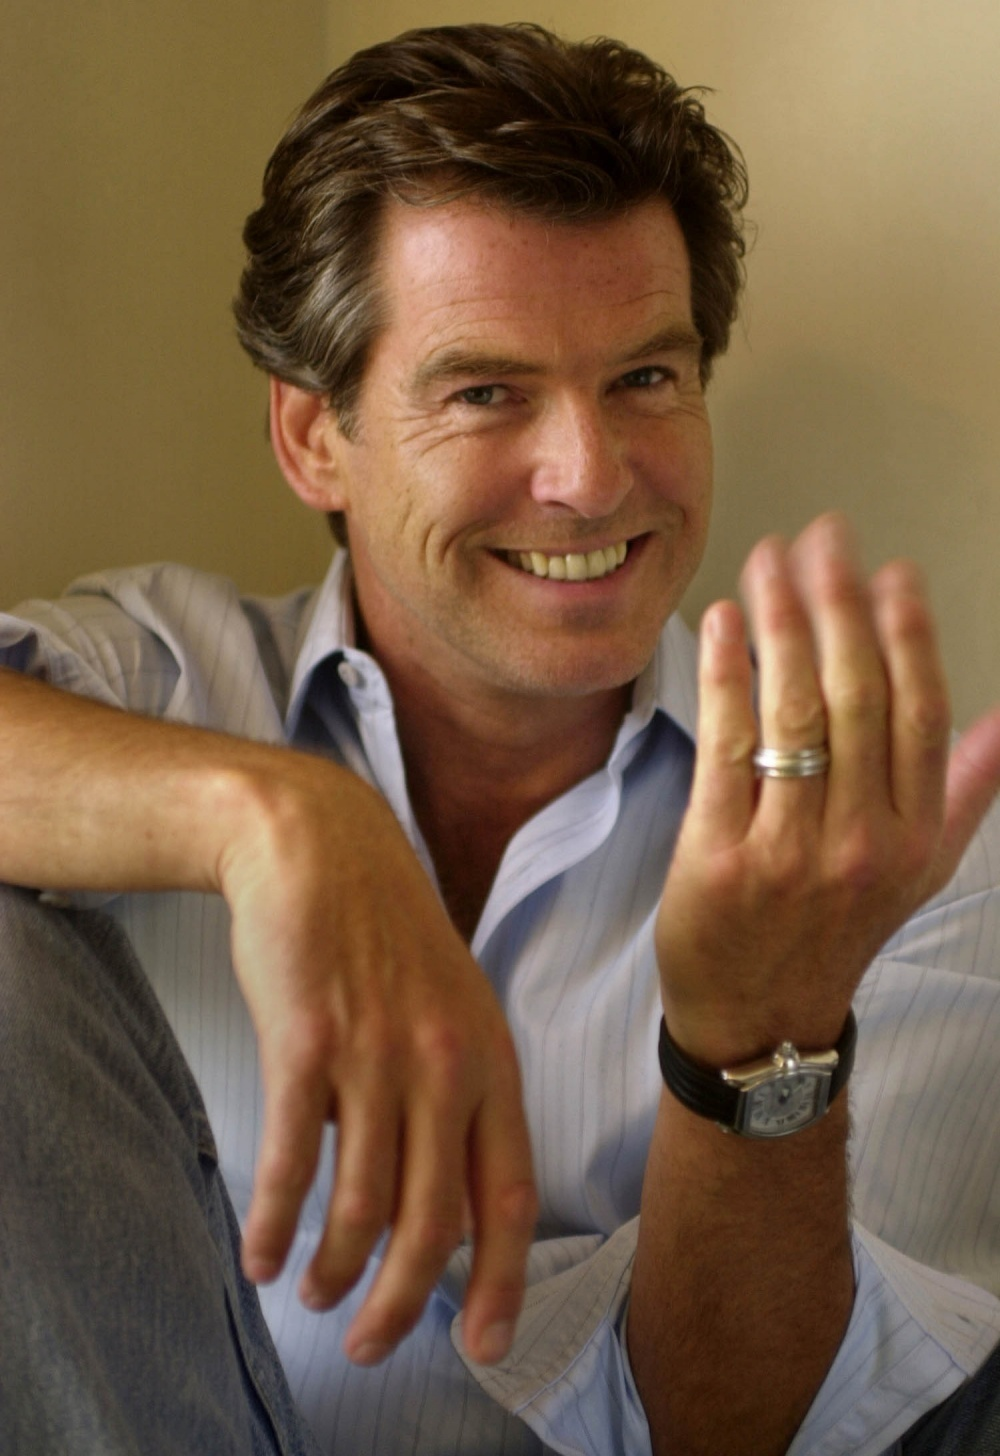 Crown Hd Wallpaper Pierce Brosnan Images Pierce Brosnan Hd Wallpaper And